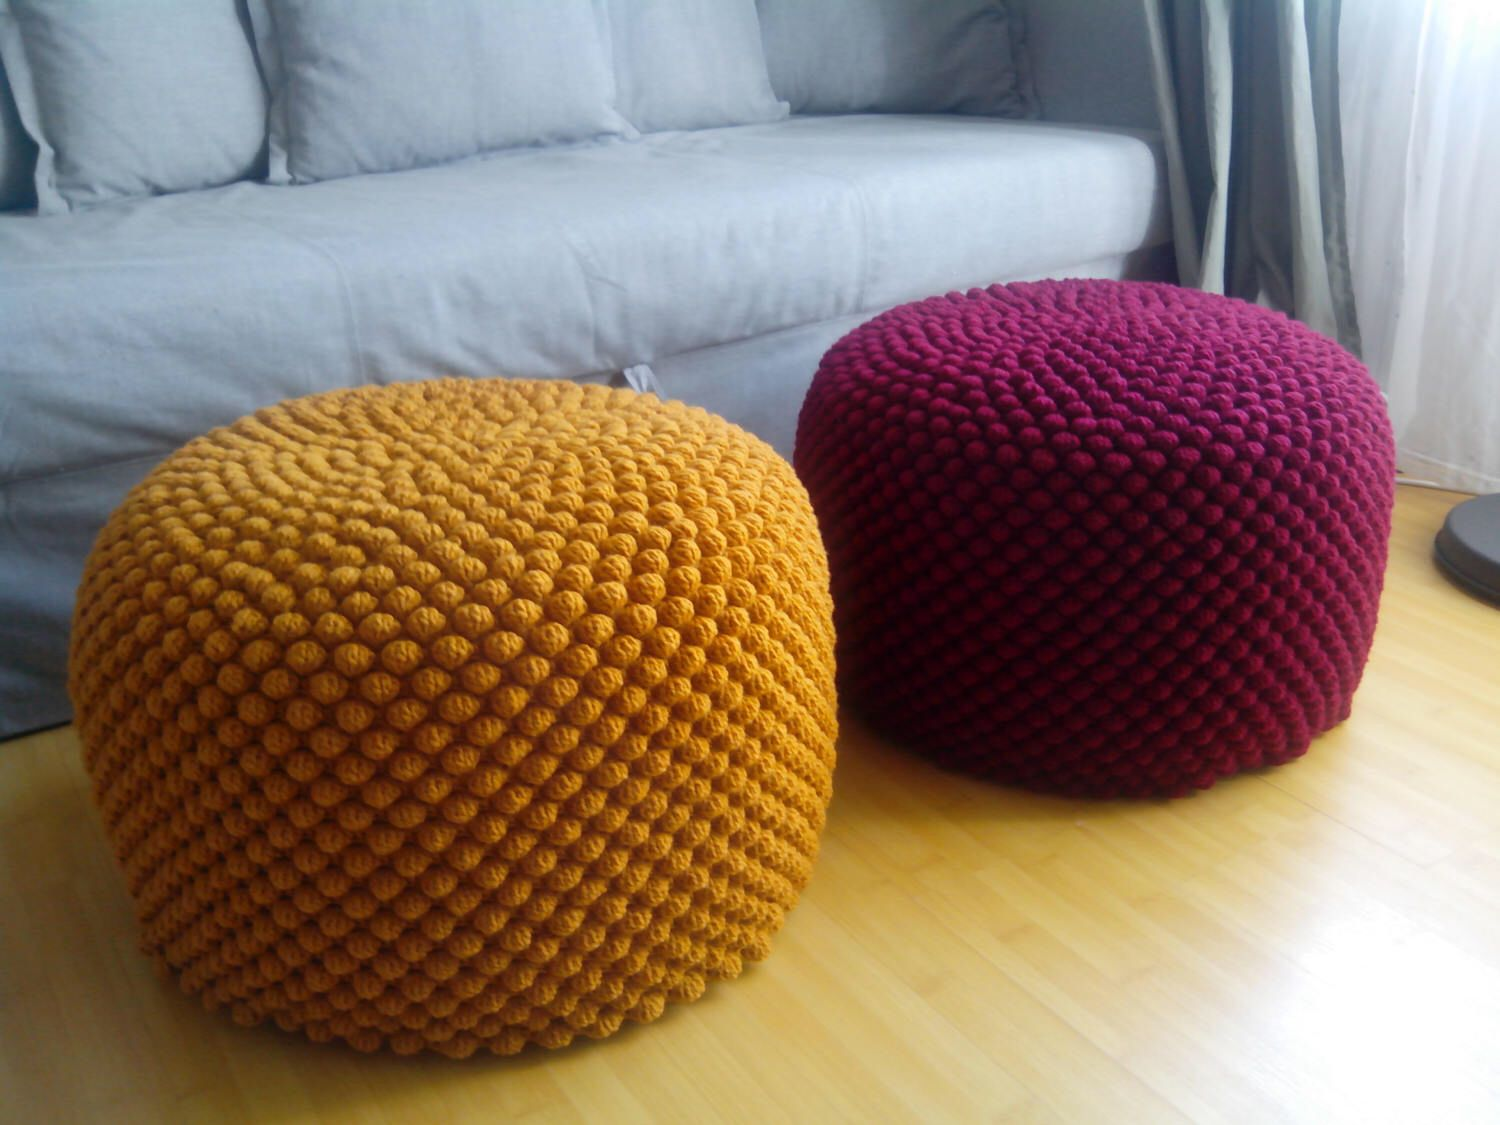 pouf rond moutarde jaune bordeaux cerise en crochet ottoman laine coussin de sol en tricot. Black Bedroom Furniture Sets. Home Design Ideas